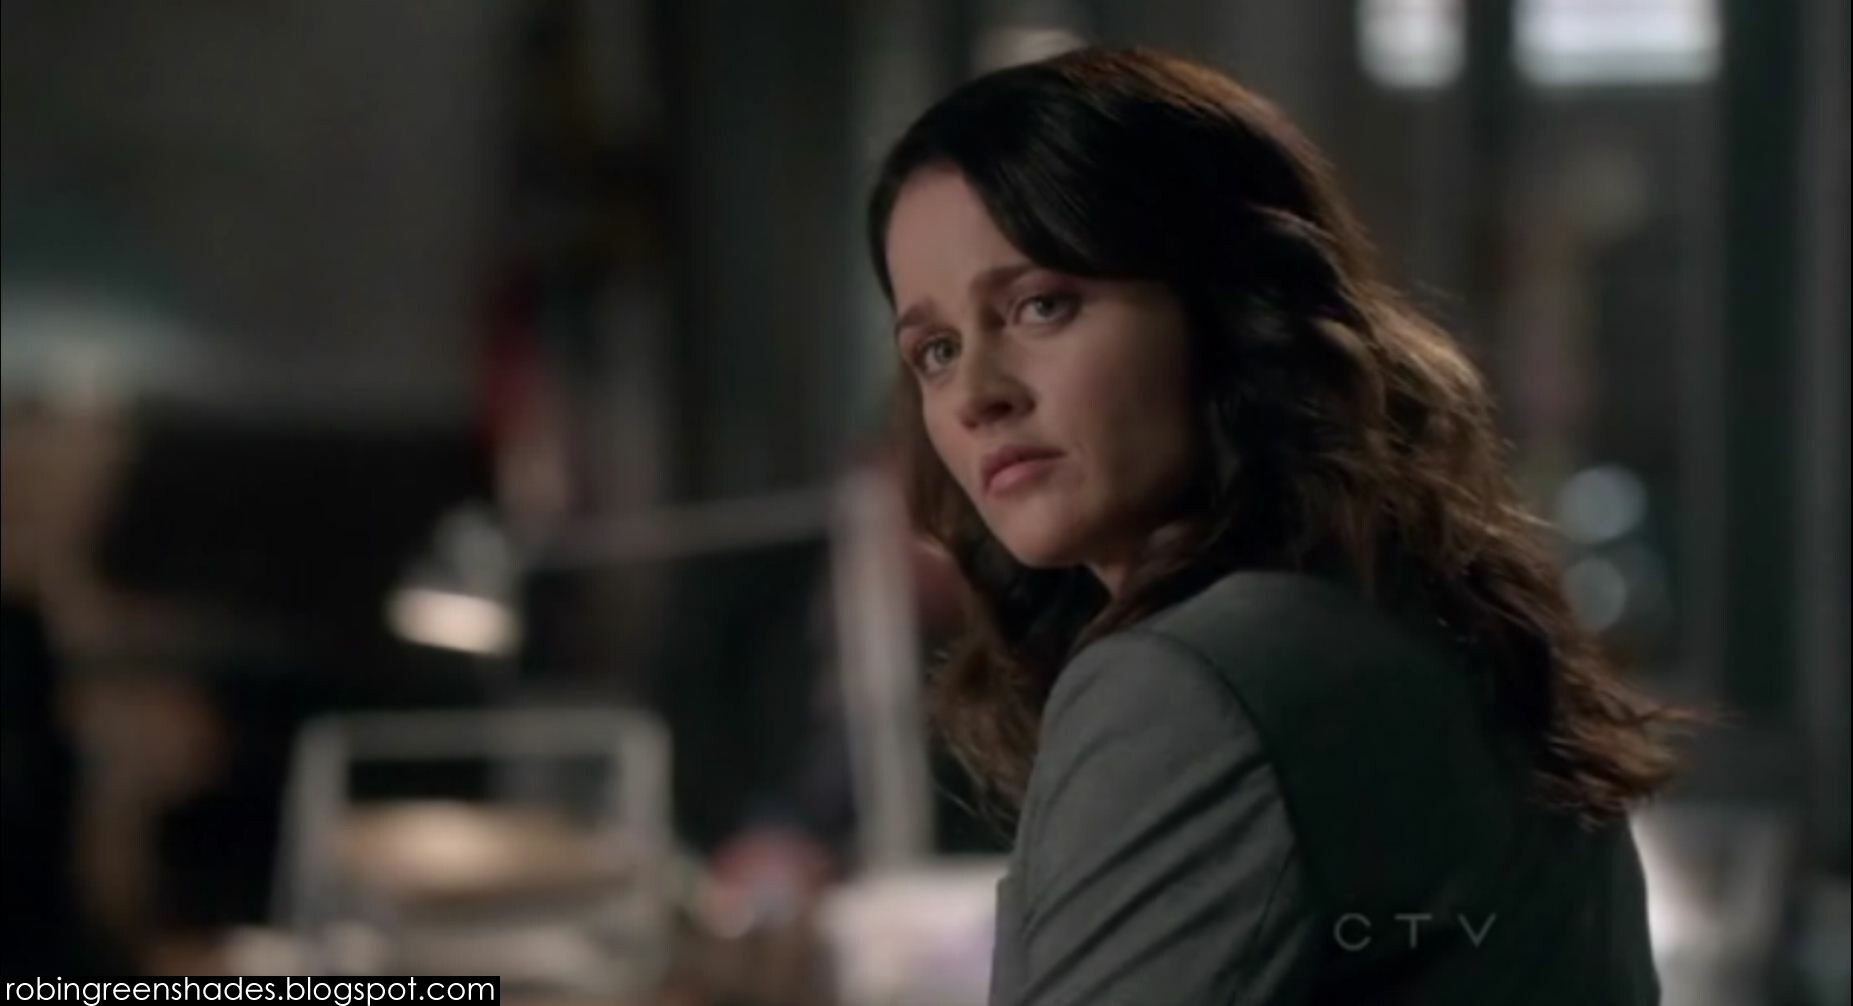 The mentalist season 5 episode 16 sockshare / Download